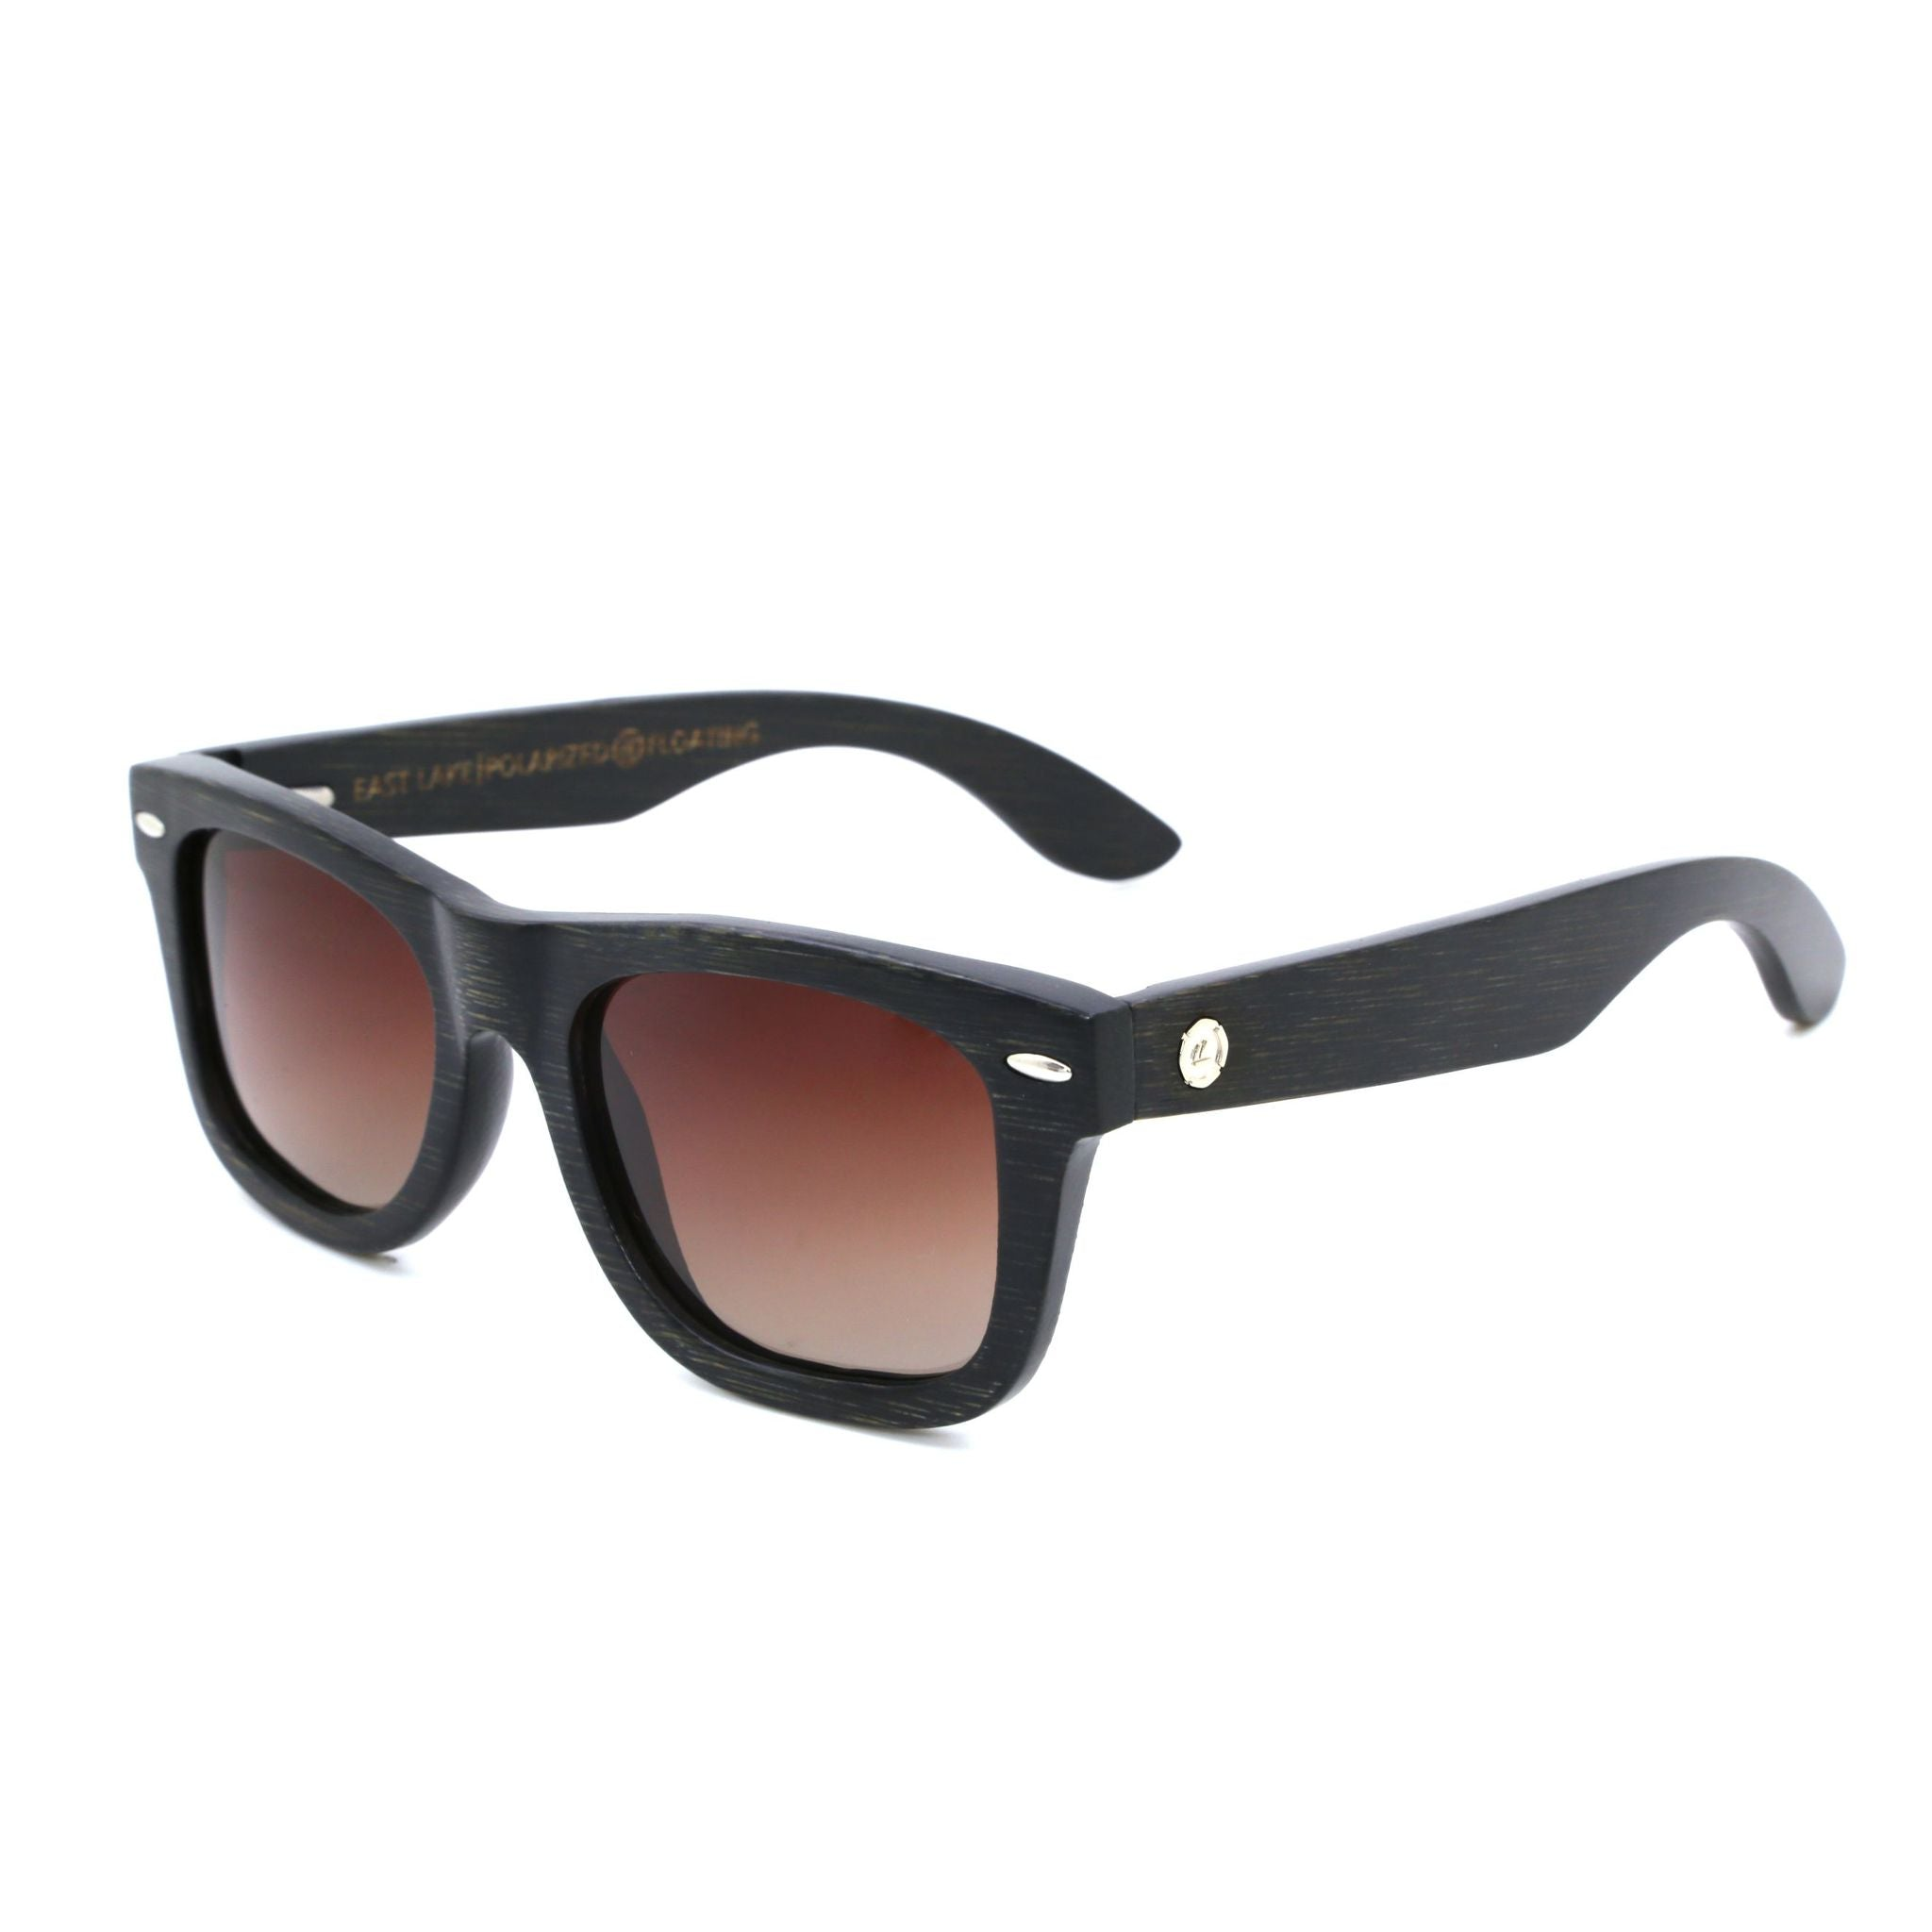 Black Wood Sunglasses - Bamboo Wood Grain Frame Polarized UV Lenses Wayfarer SBOJI NautiCurl Shades Eyewear